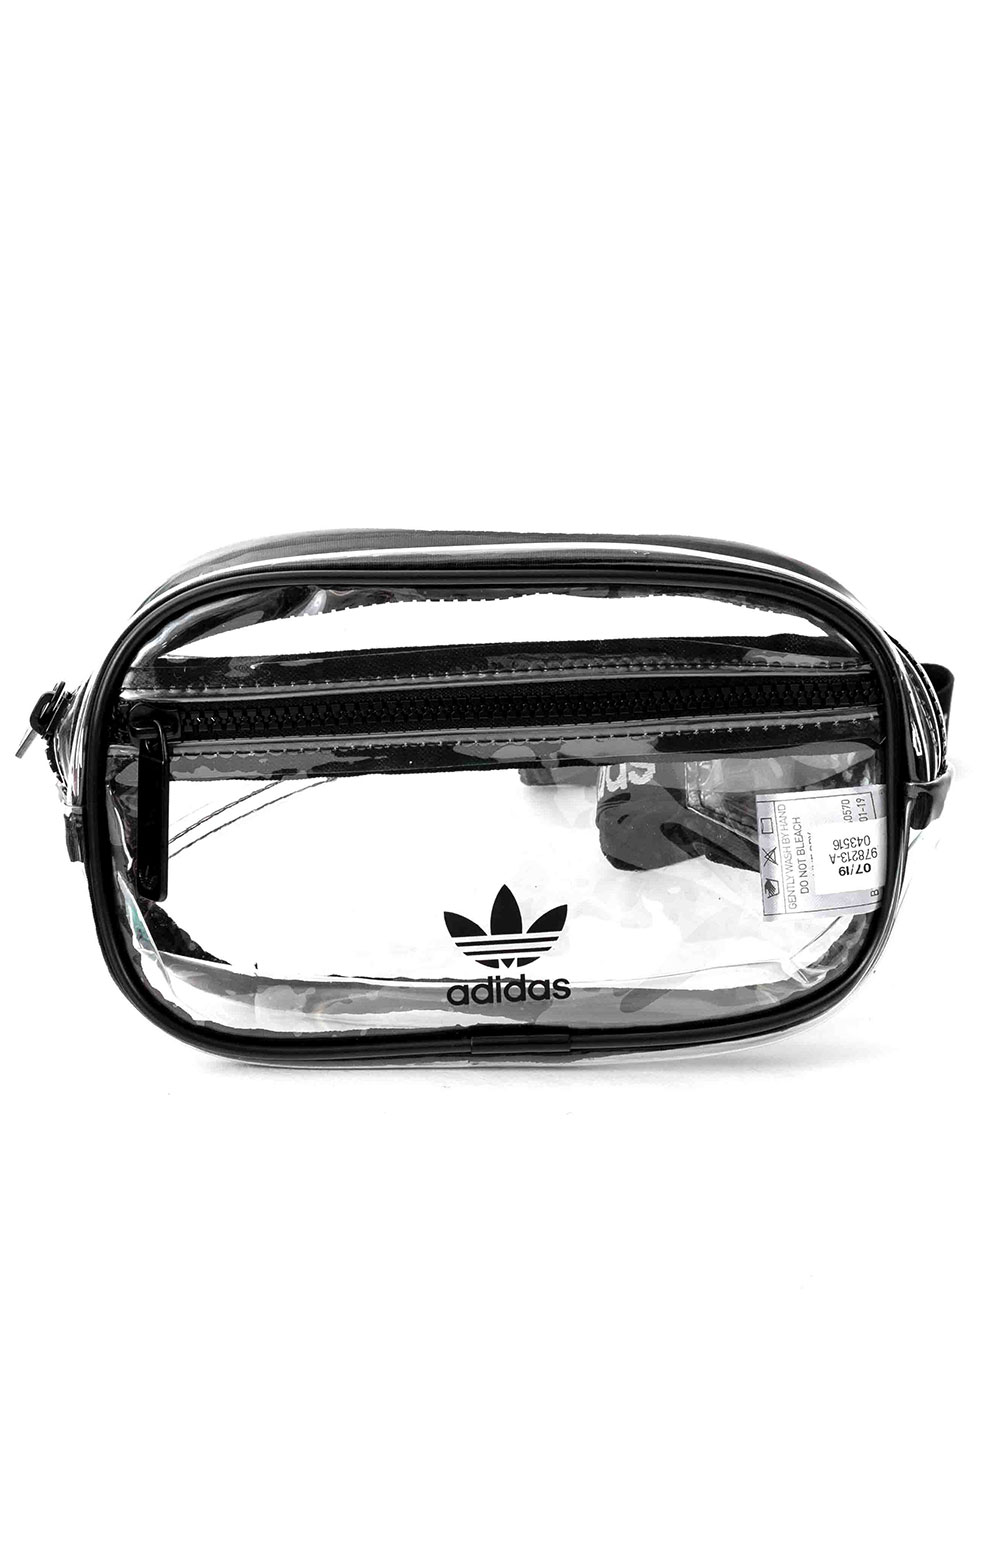 Originals Clear Waist Pack - Black